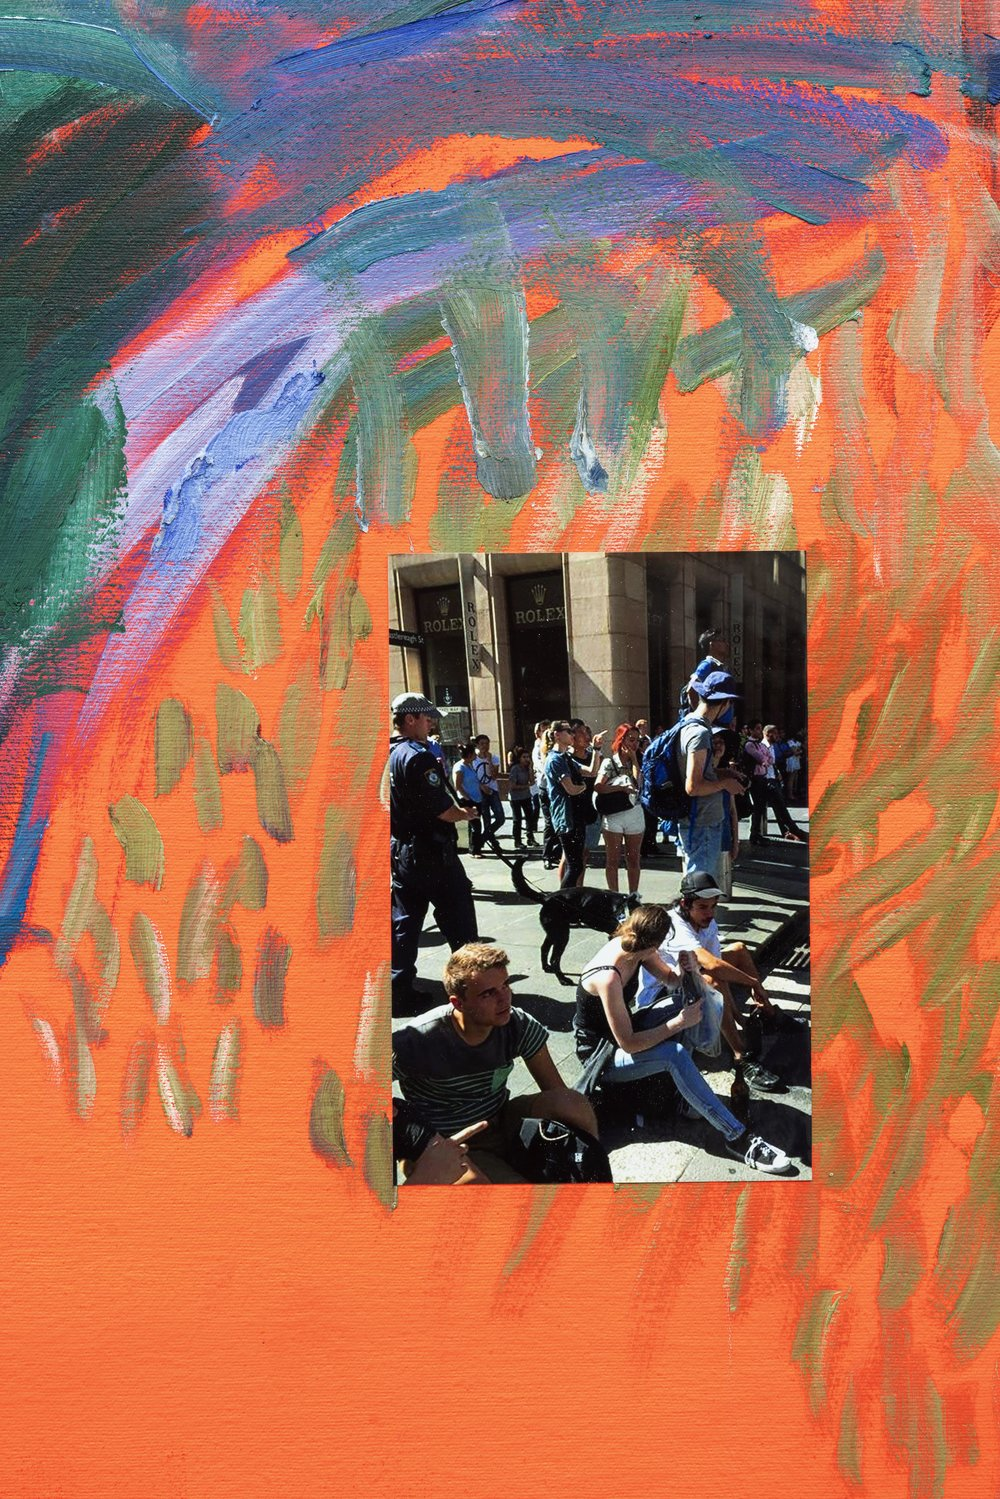 """George Egerton-Warburton,  Penal Café: Café Confidential , 2014, oil, flashe, photograph of spectators drinking beer and watching the """"Sydney Siege"""" at the Lindt café, 47 1/4 × 59 1/4 inches (detail)"""